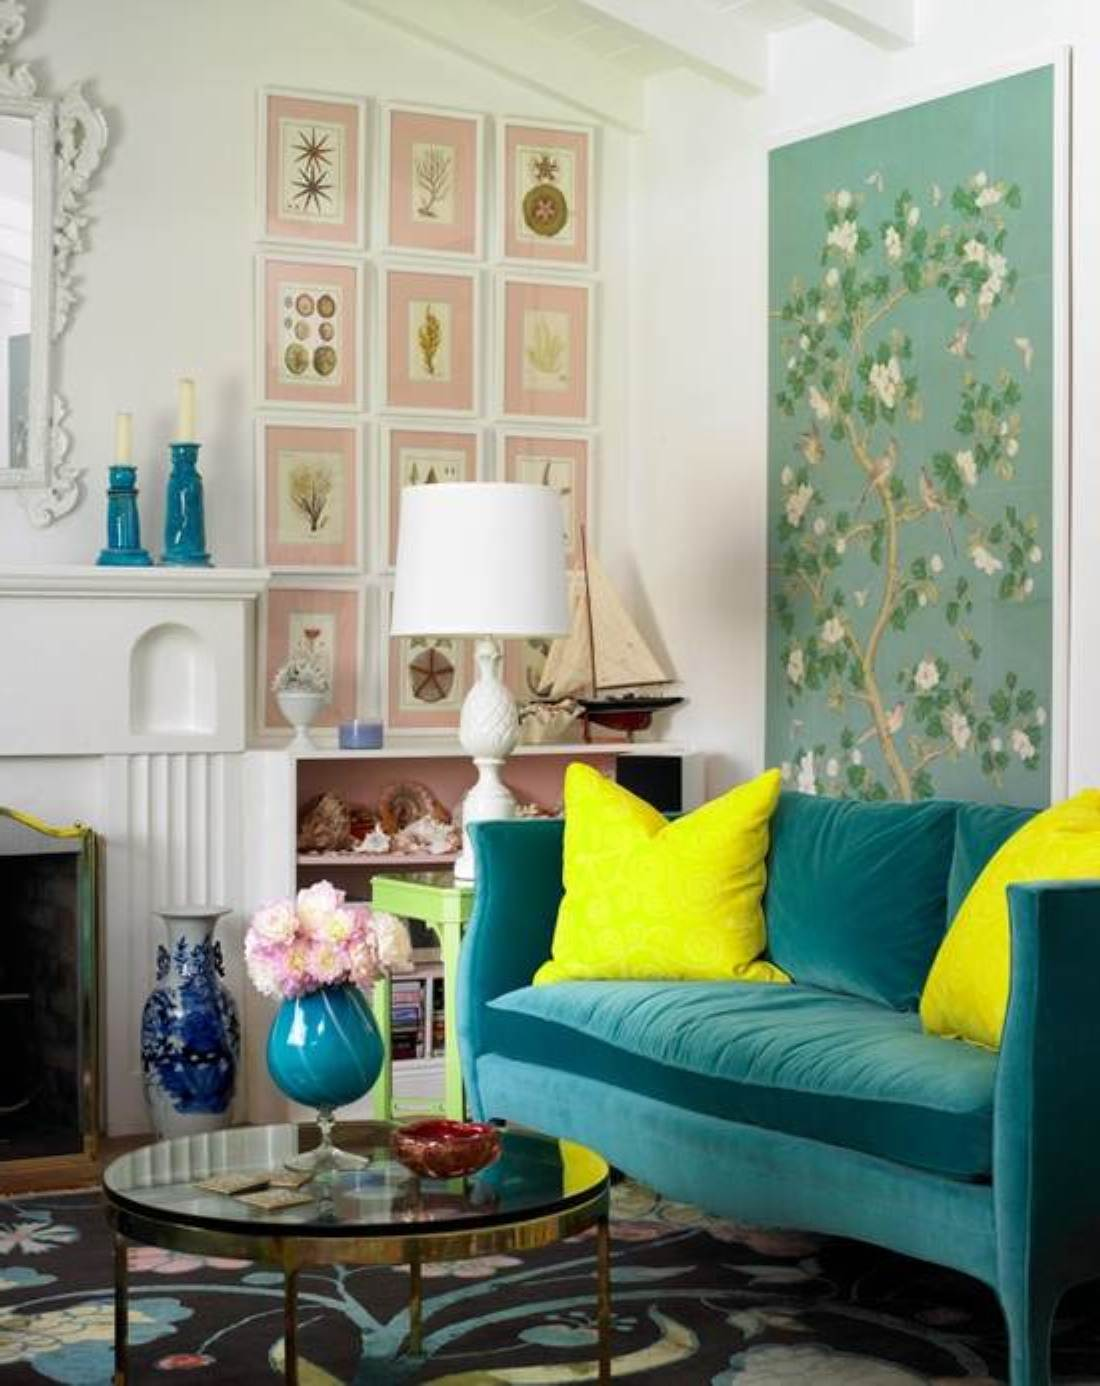 30 amazing small spaces living room design ideas - Decorations ideas for living room ...